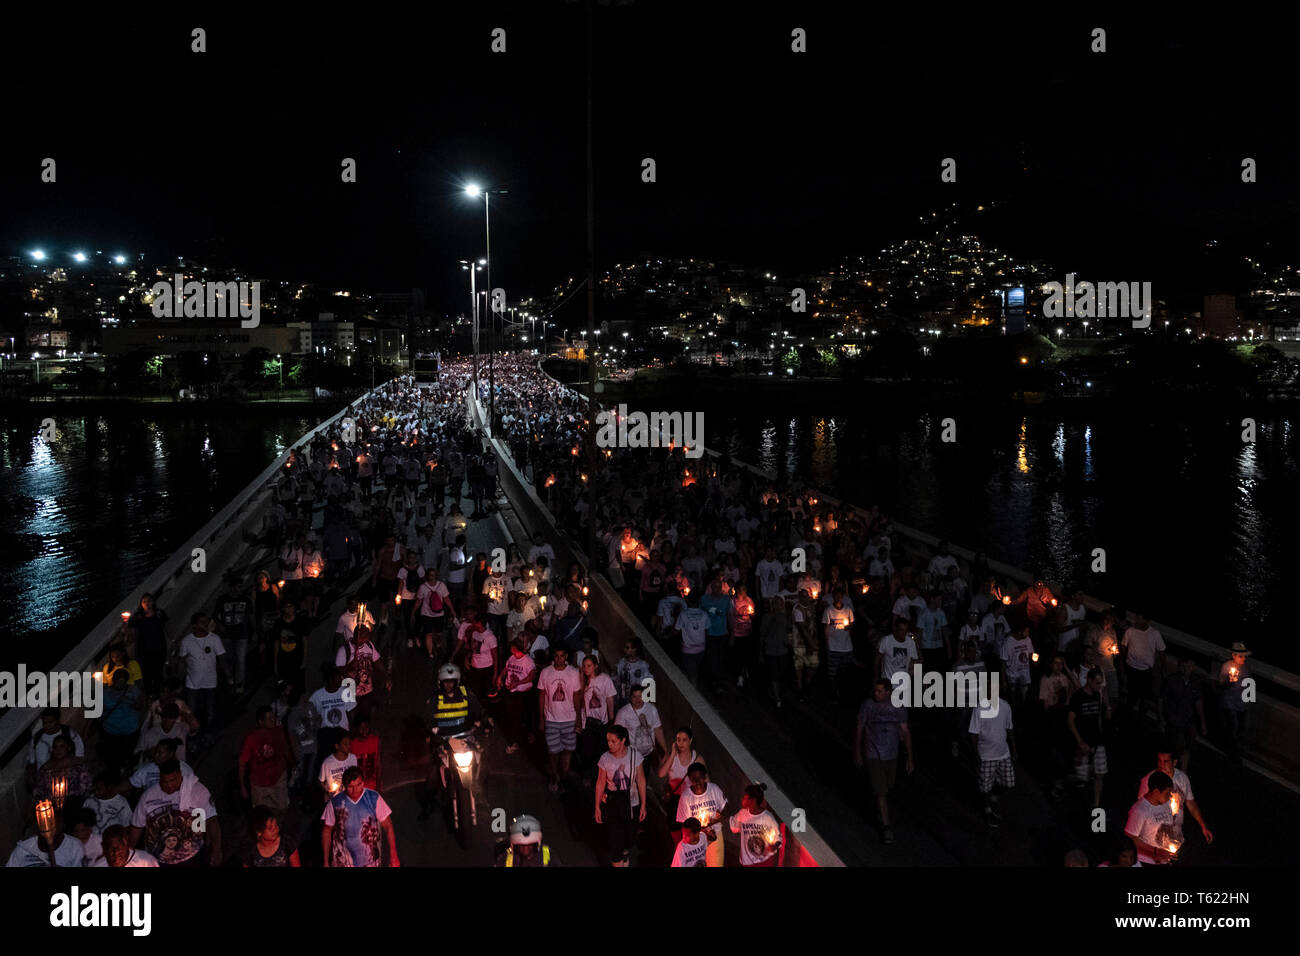 27 April 2019, Brazil, Vitória do Espírito Santo: Believers take part in the pilgrimage in the city of Vitória do Espírito Santo in the southeast of Brazil with candles. The 'Romería de los hombres' (men's pilgrimage) is a pilgrimage of Catholic believers that has been celebrated every year since 1958. The pilgrimage is considered one of the three largest in Brazil. According to the Catholic Church, about 700,000 people attended the event this year. Photo: Diego Herculano/dpa - Stock Image